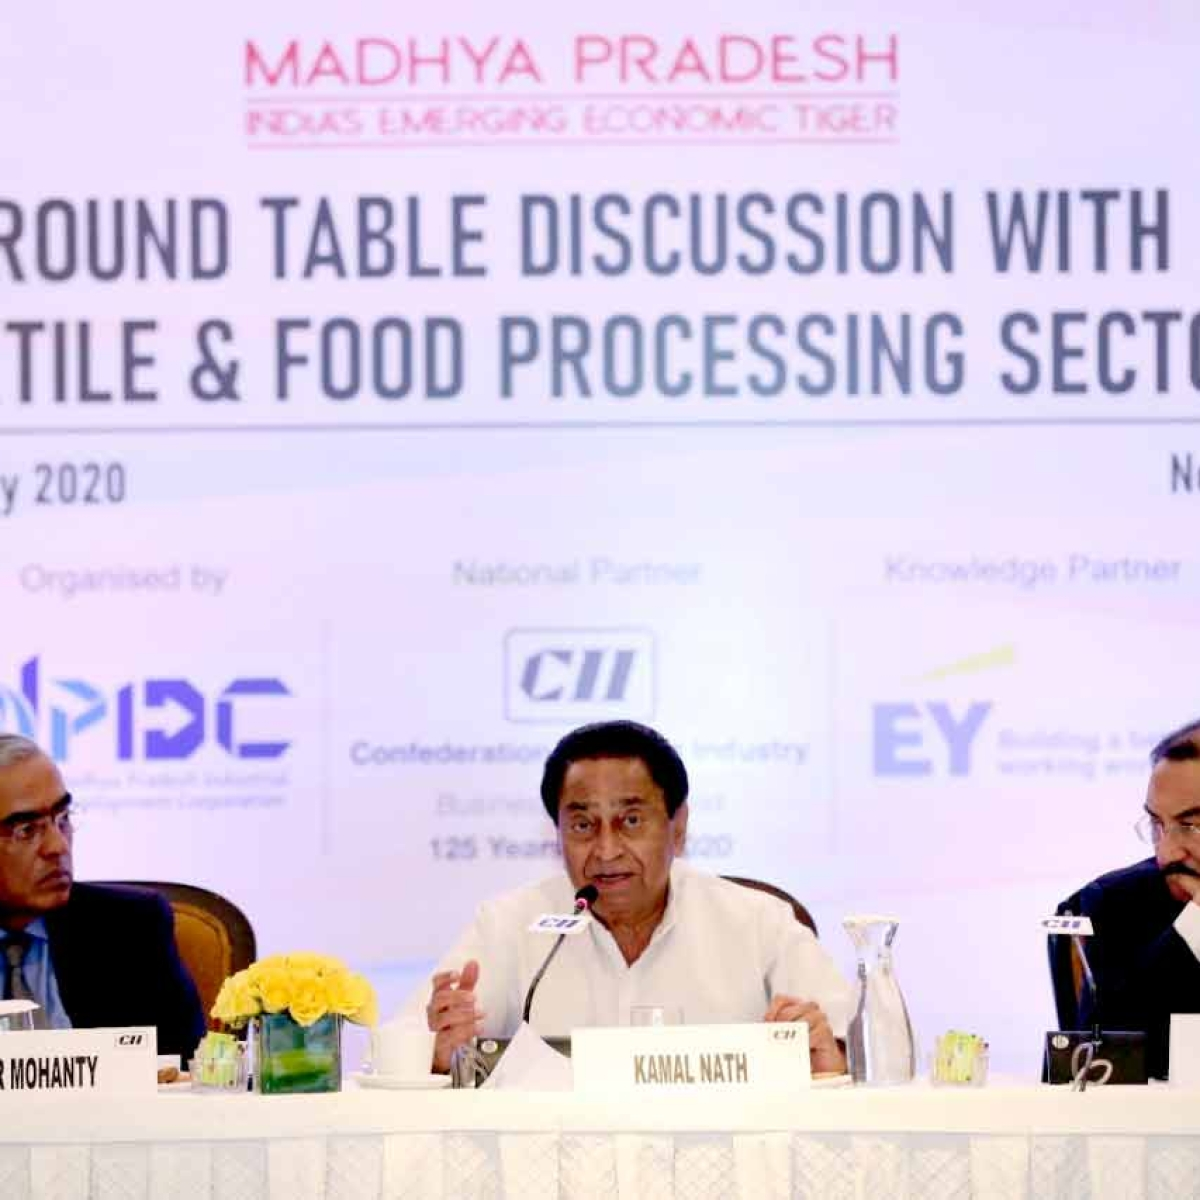 Madhya Pradesh: CM Kamal Nath brings investment worth Rs 3,250 crore in textile sector